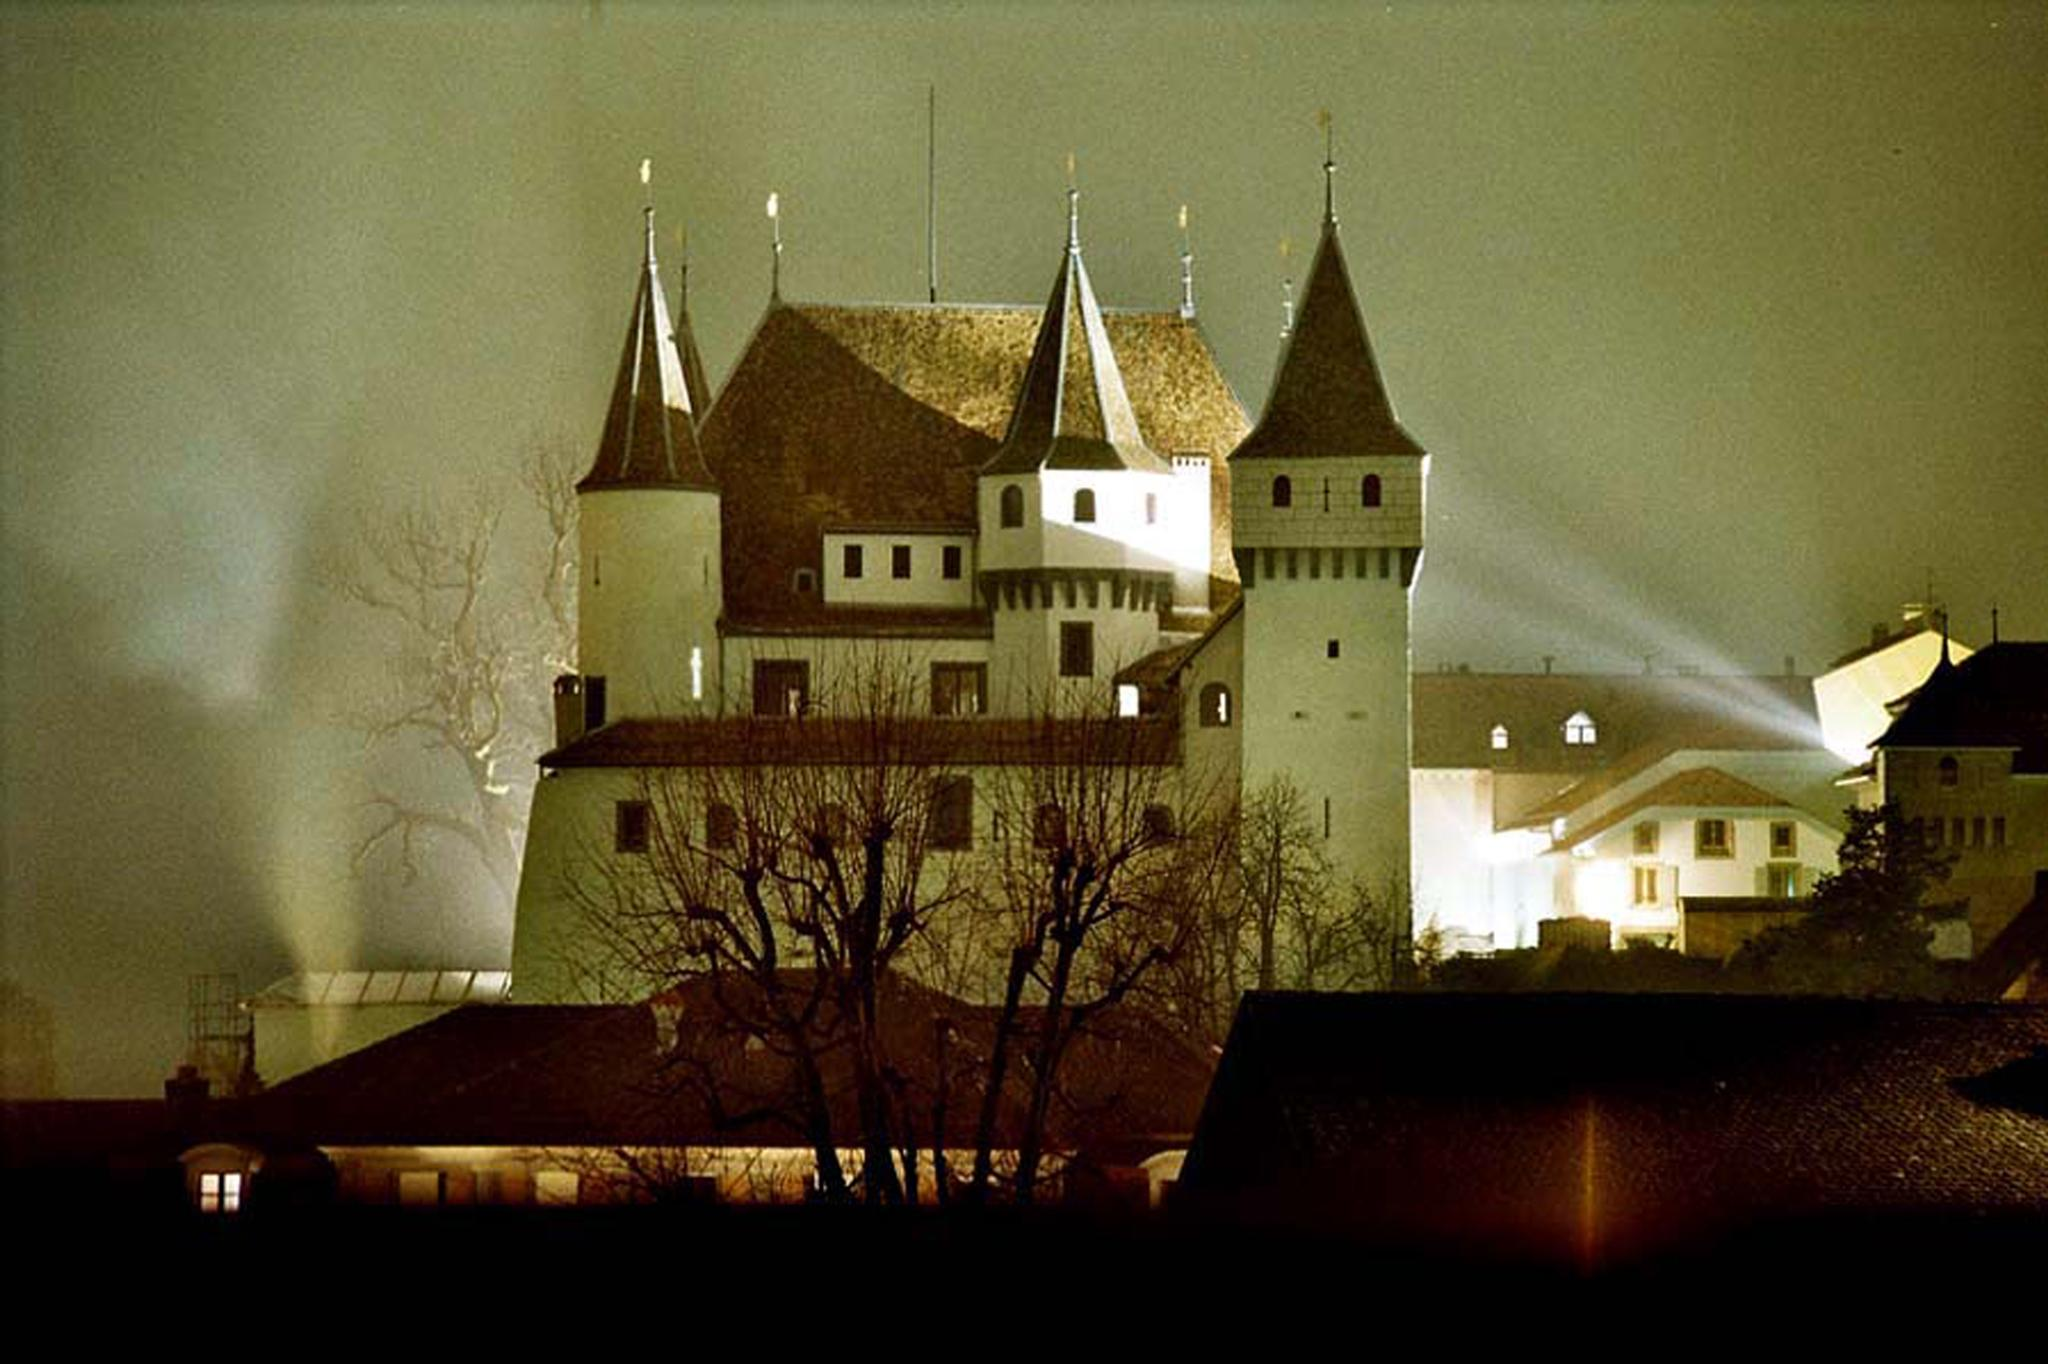 Nyon castle in the night and frog by Phif60